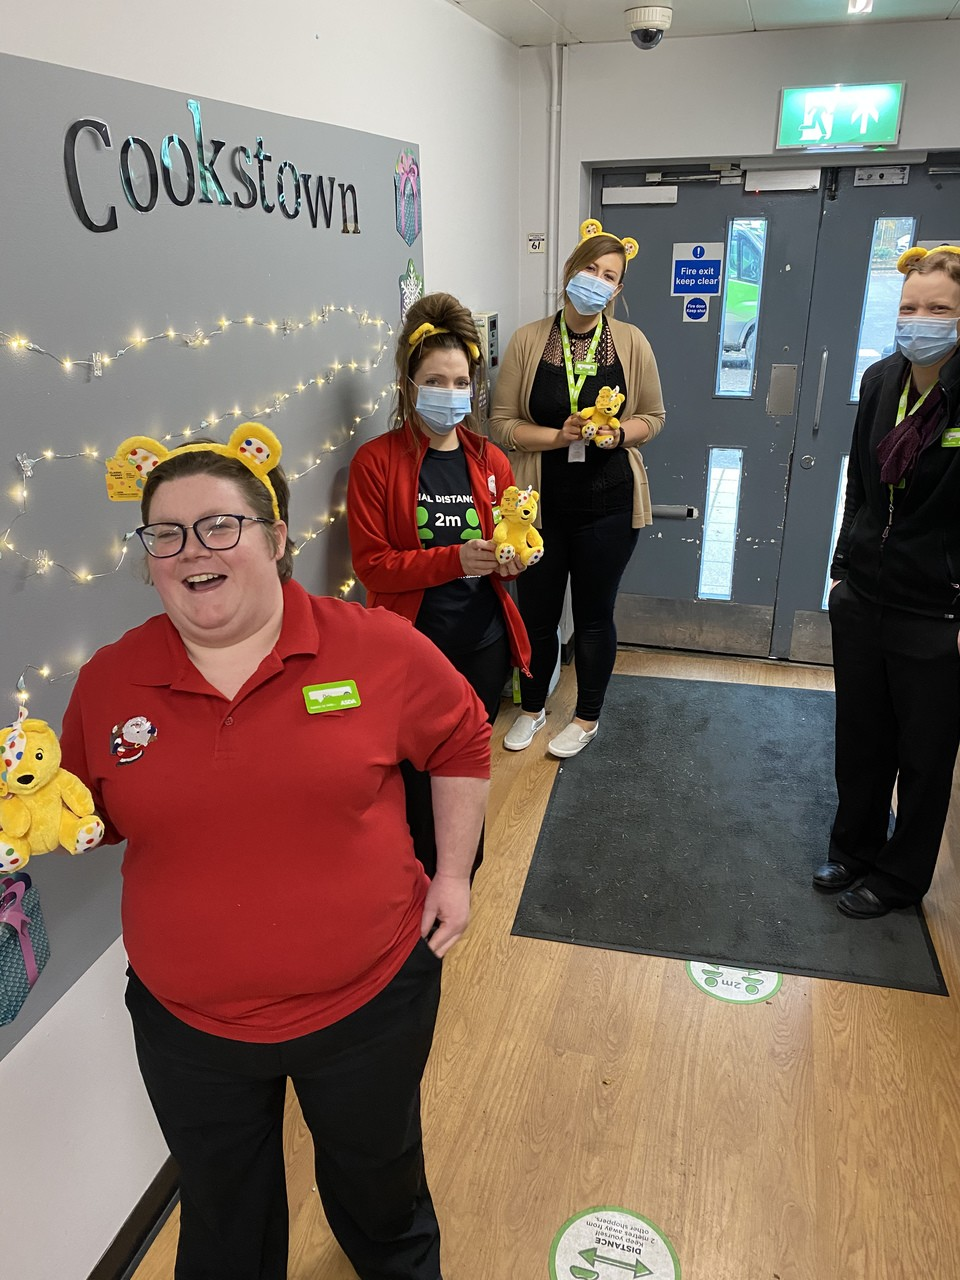 Getting into the spirit of Children In Need | Asda Cookstown